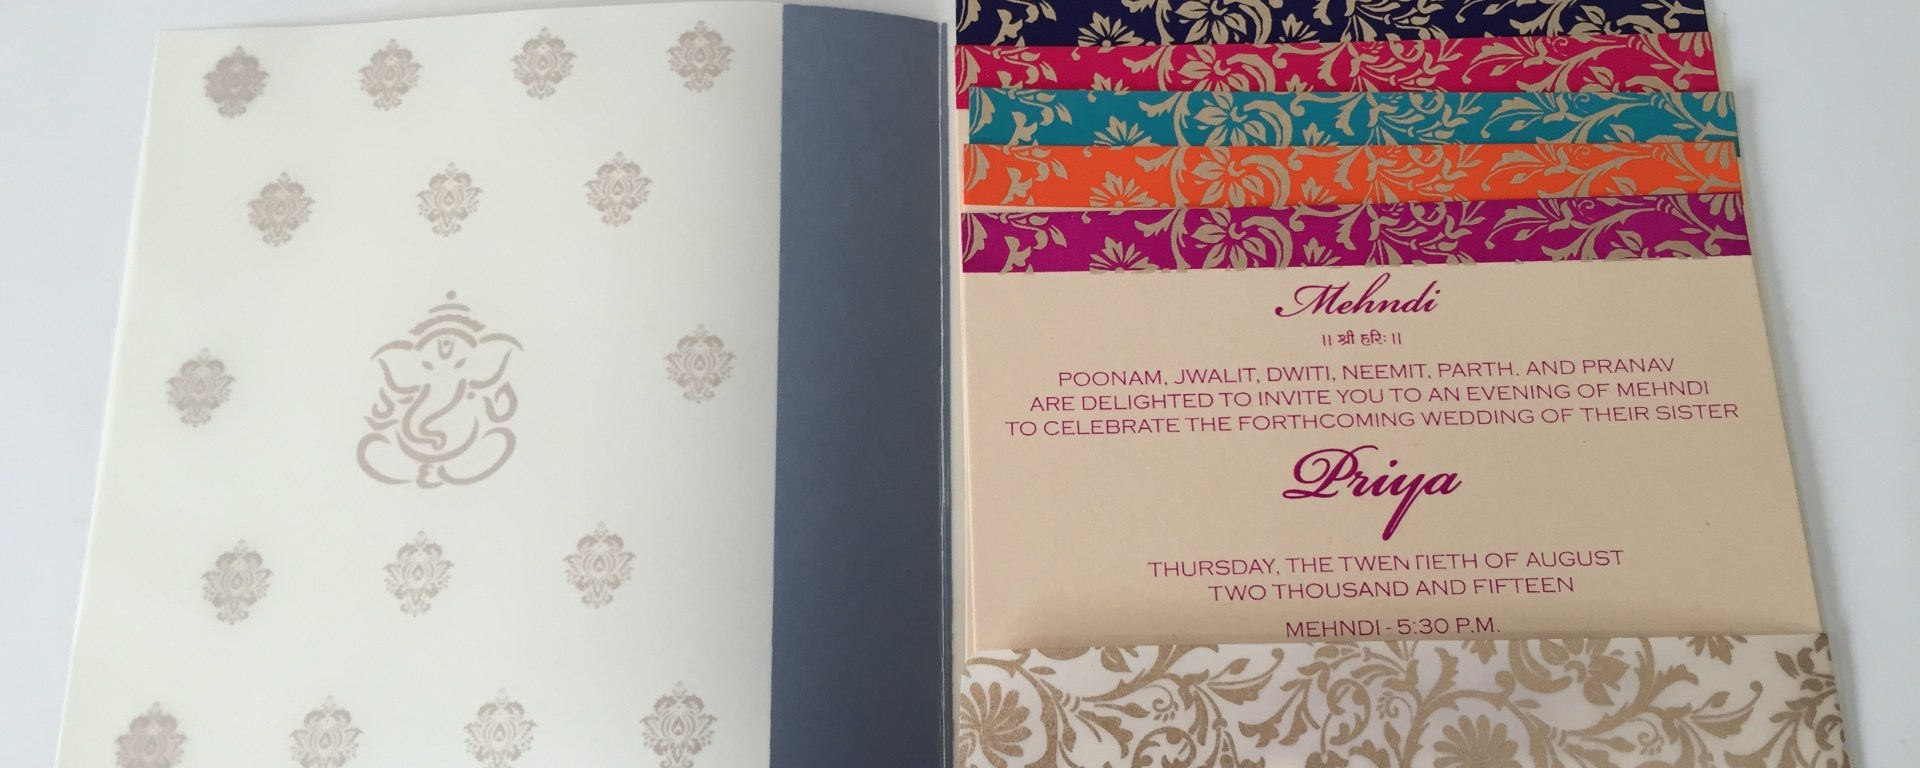 Indian wedding invitations are an often overlooked cost